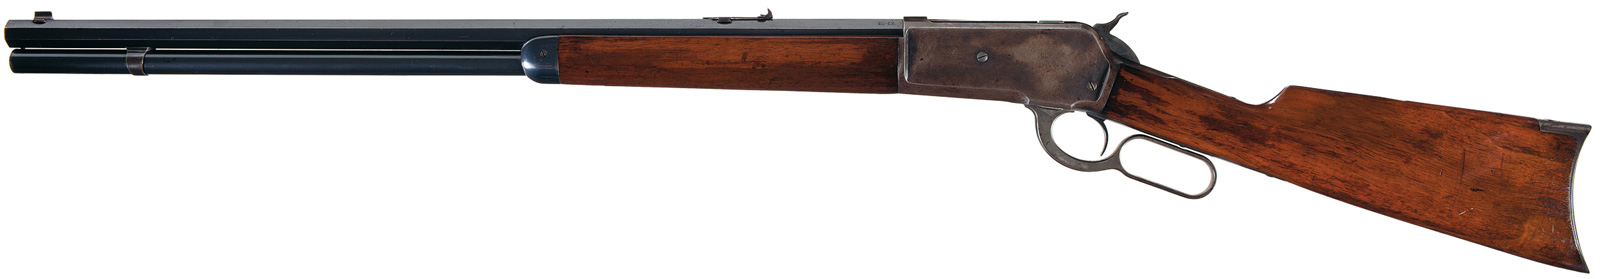 Winchester Model 1886 50 Express Smoothbore Lever Action Rifle